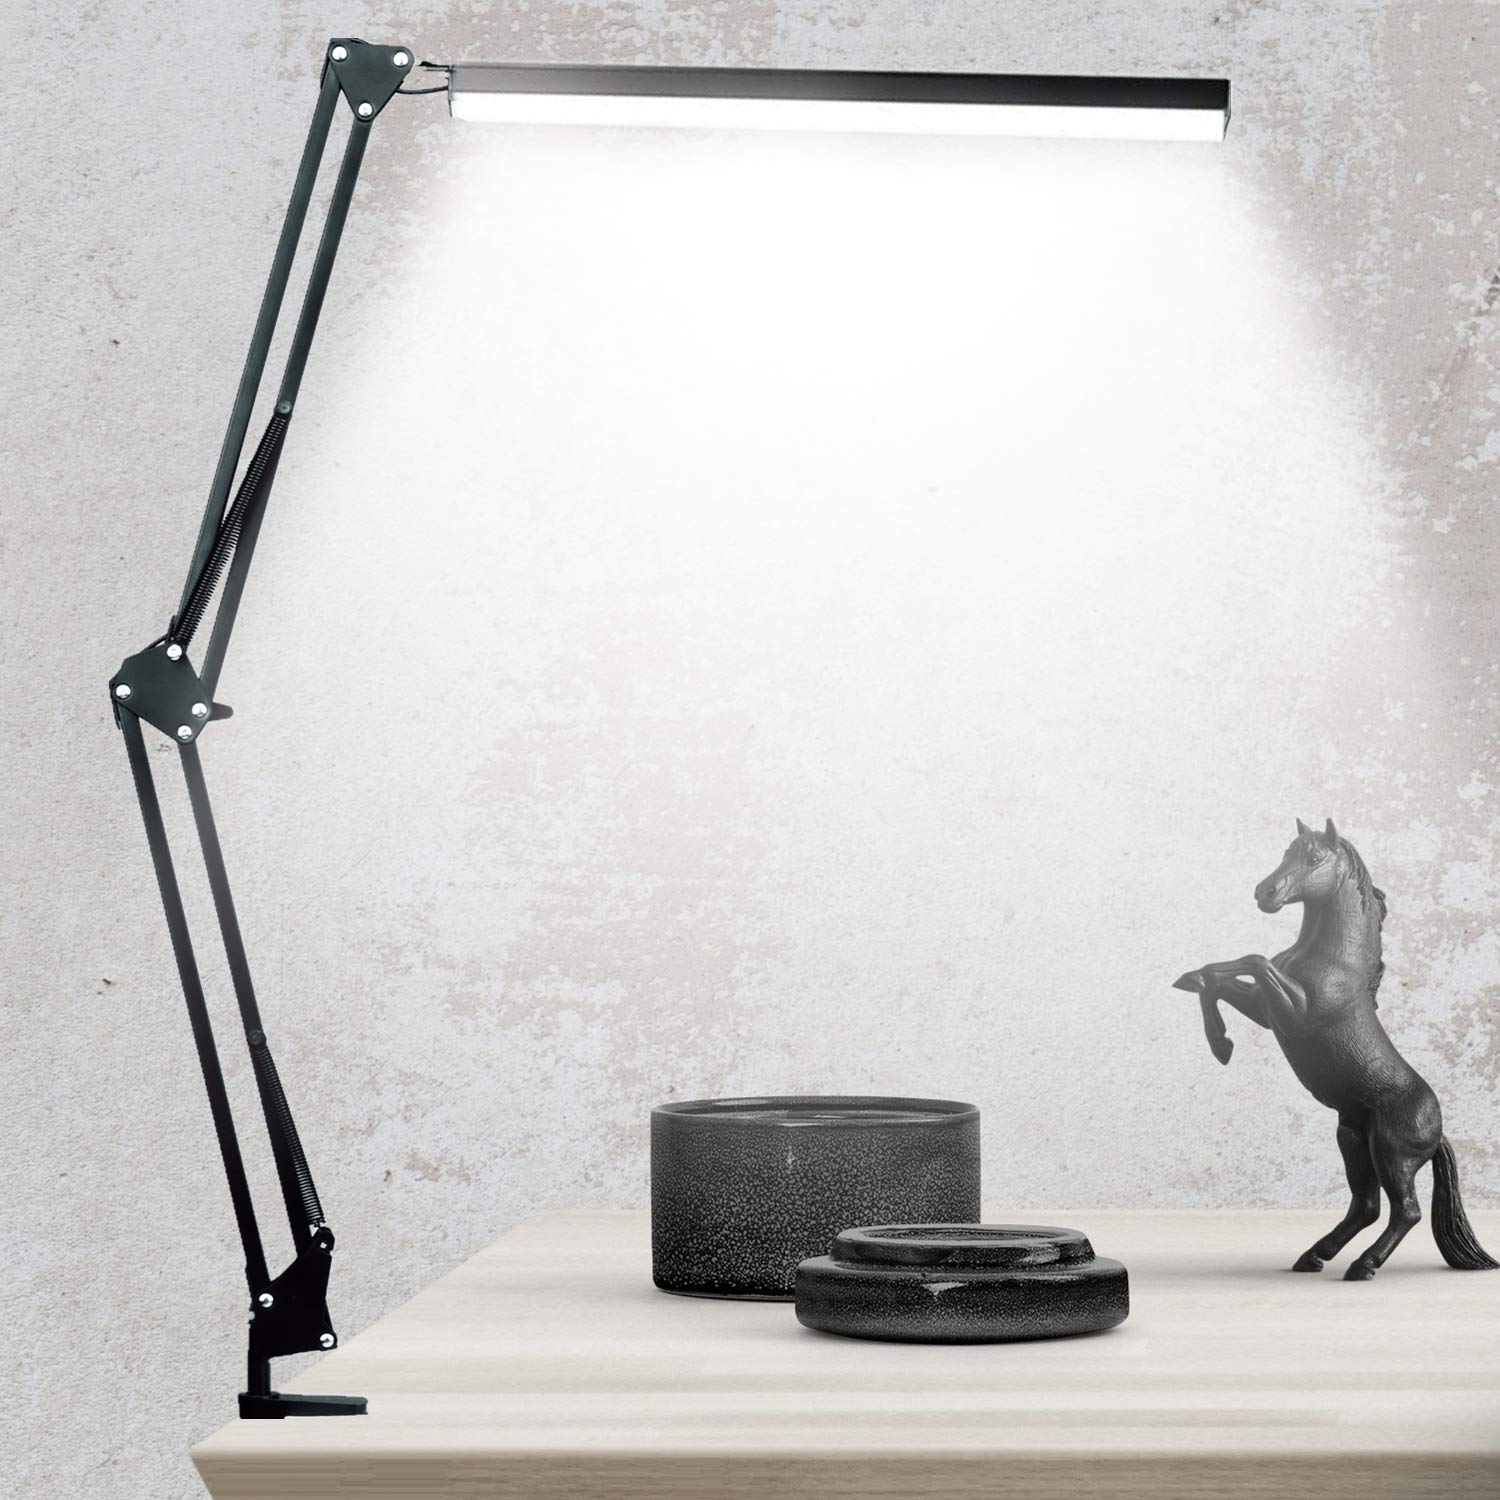 LED Architect Desk Lamp, BZBRLZ Metal Swing Arm Lamp, Infinite Brightness Adjustable, Eye-Caring Dimmable Table Lamp, 3 Color Modes, One-Button Operation, Memory Function by BZBRLZ